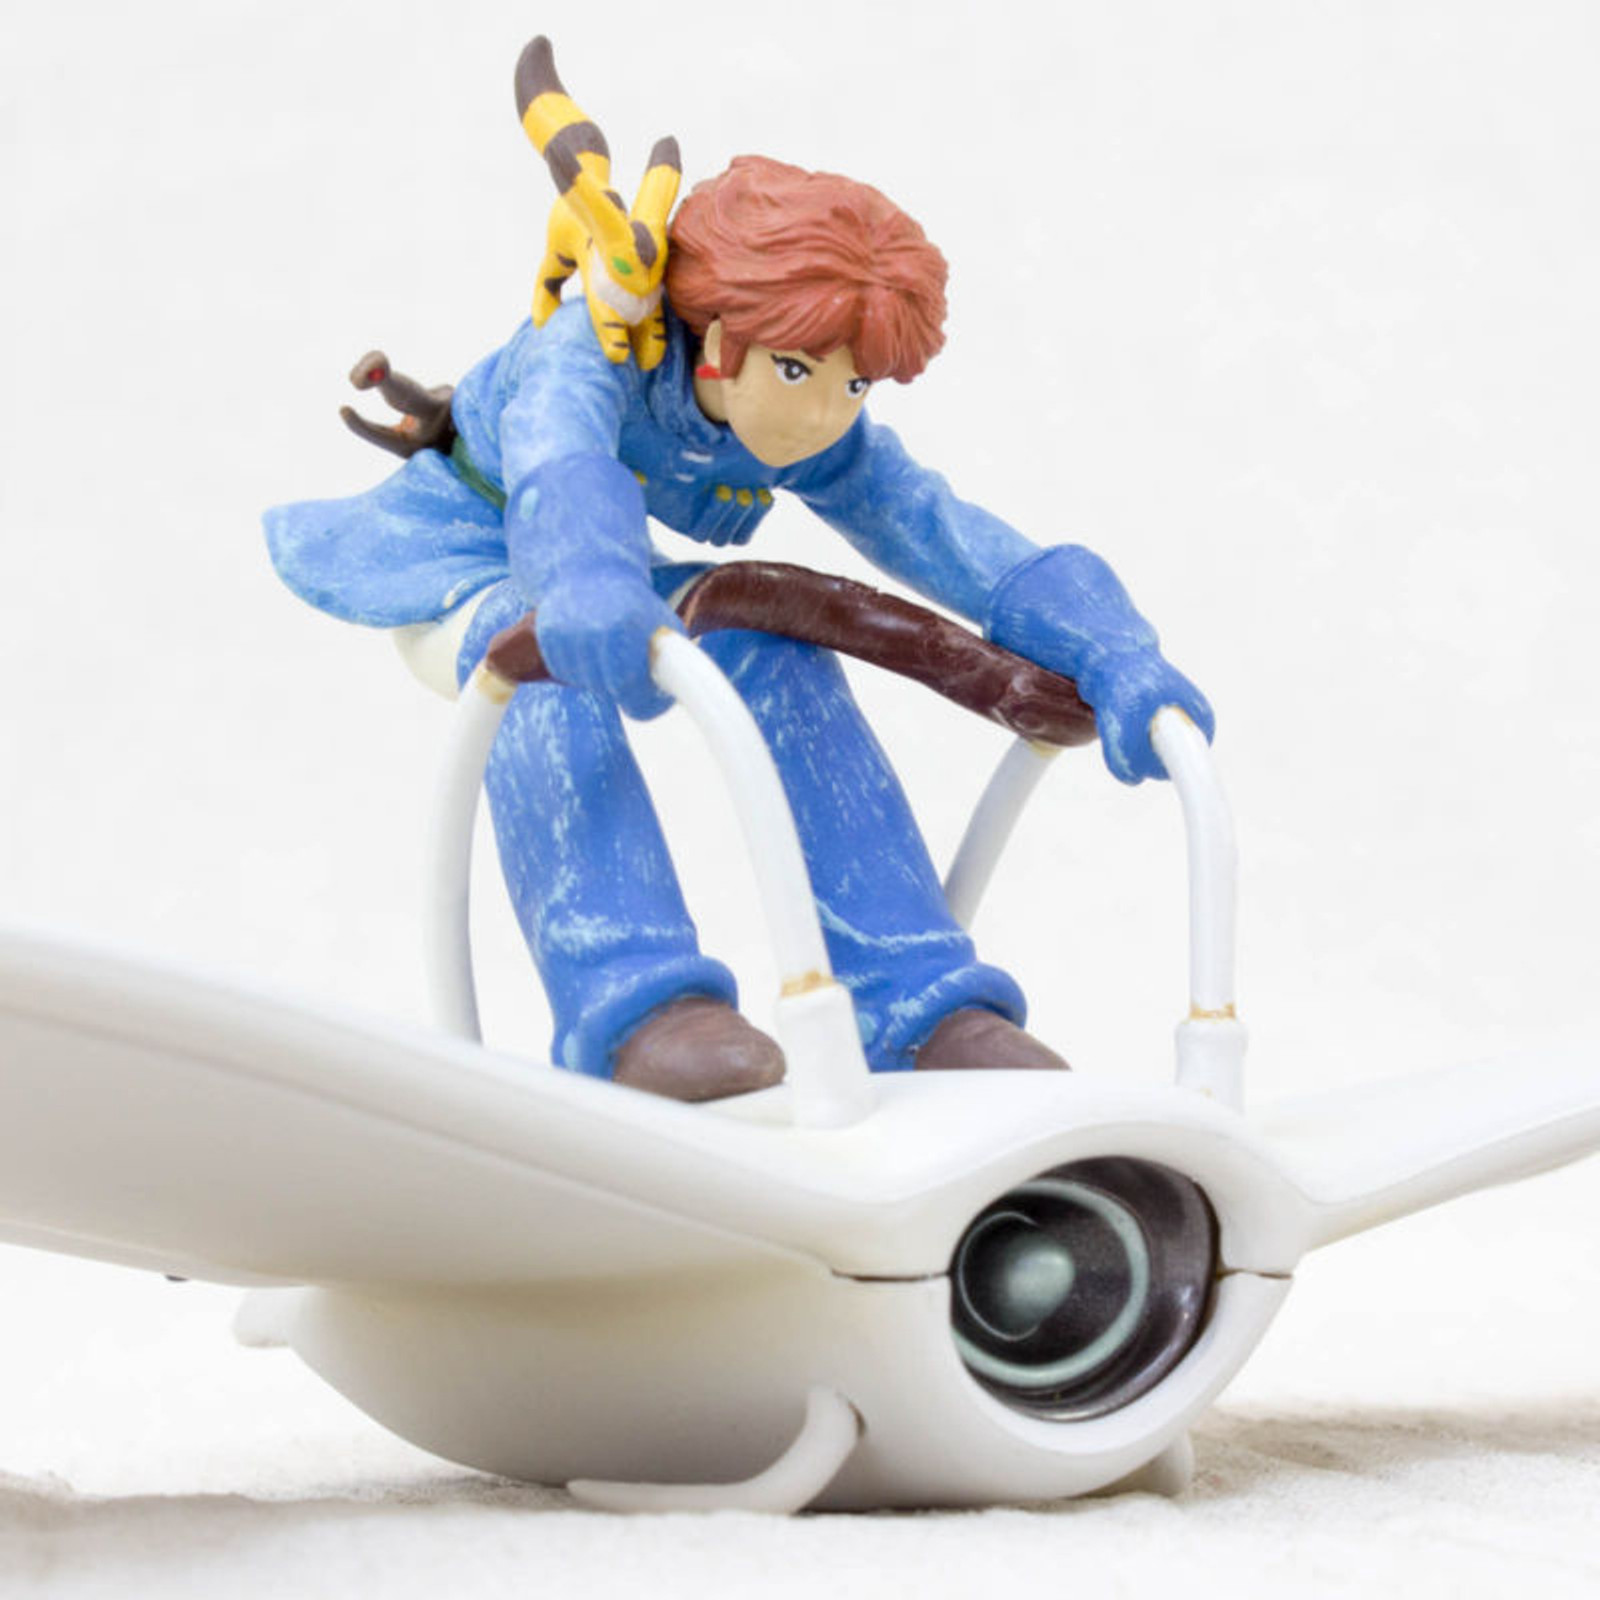 Nausicaa of the Valley of the Wind MOWE Figure Image Model Cominica Ghibli